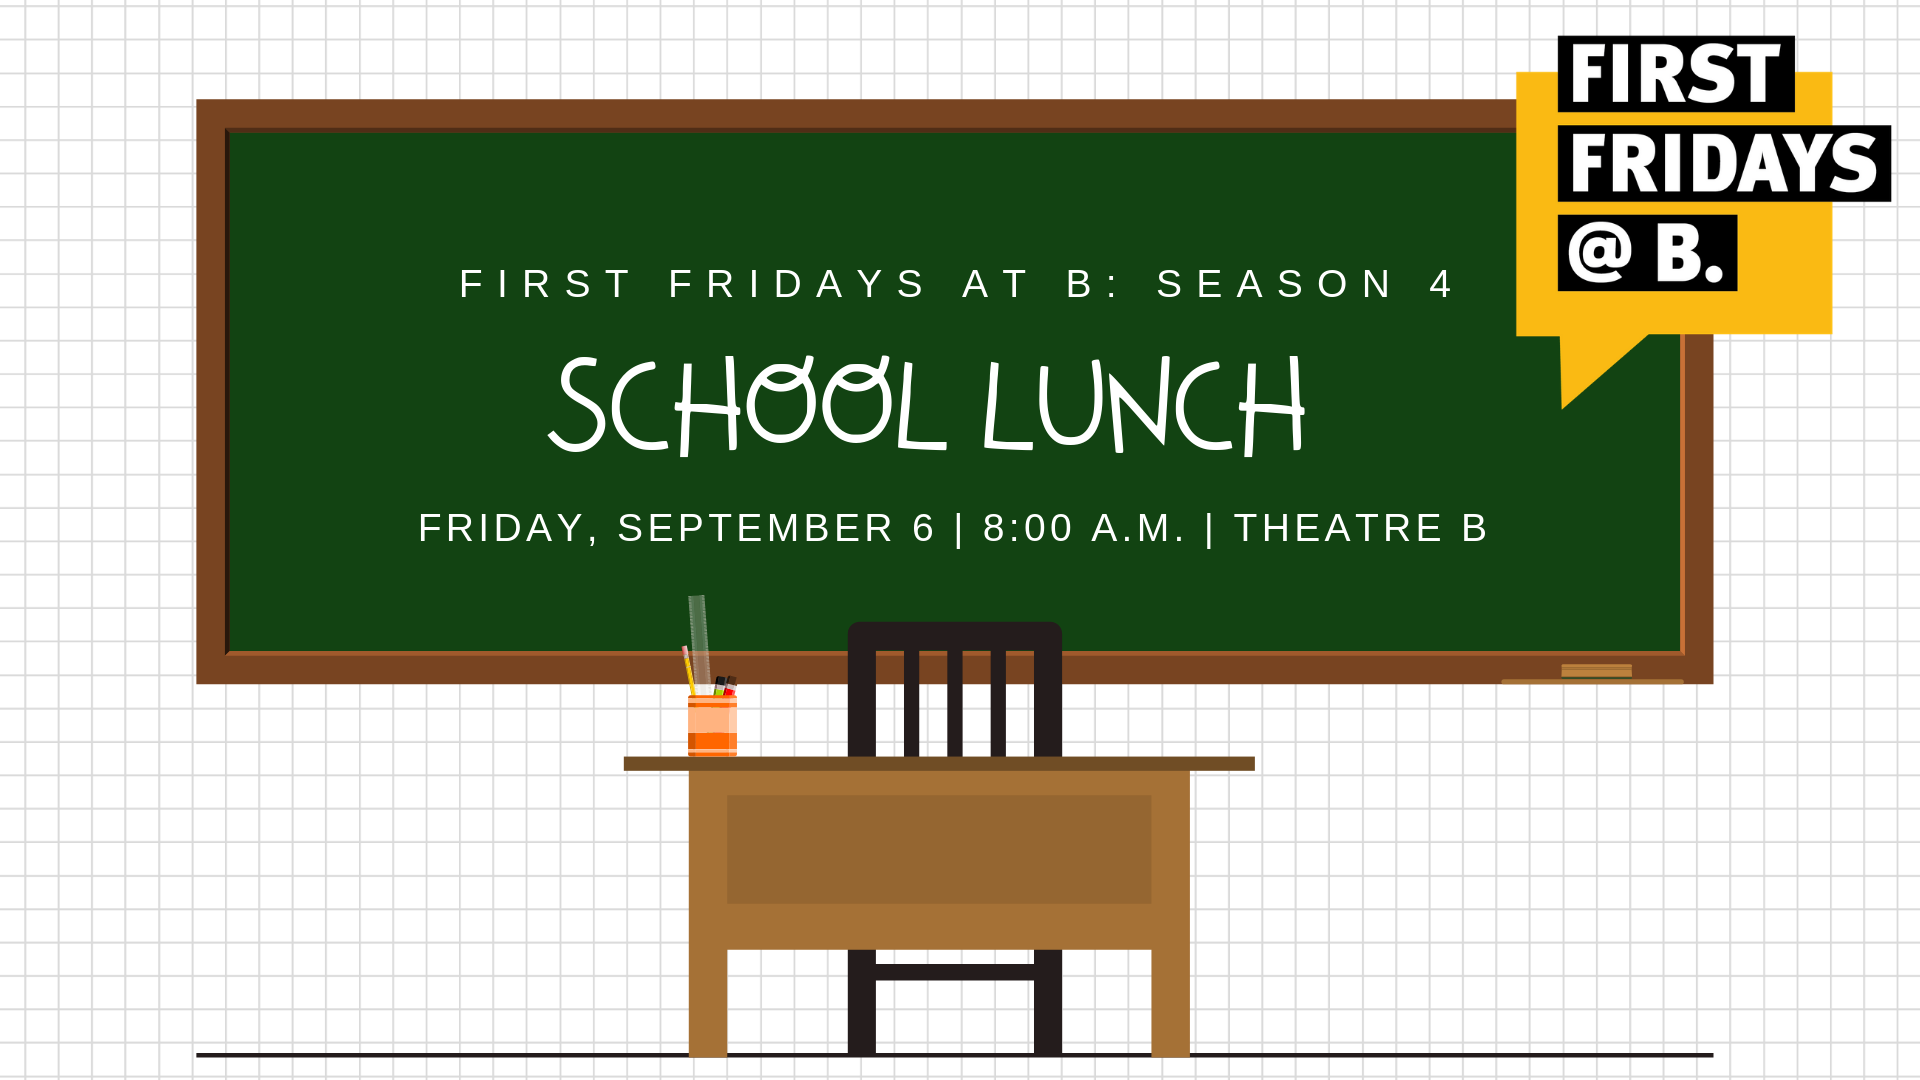 Friday, September 6 - To commemorate the start of school, we kicked off our FOURTH season with an event focused on school lunch featuring Greg Gefroh (Fargo Public Schools), Dana Hanson-Rieth (West Fargo Public Schools), and Kara Gloe (Moorhead Public Schools Board Member / PB&J Fundraiser Co-founder)